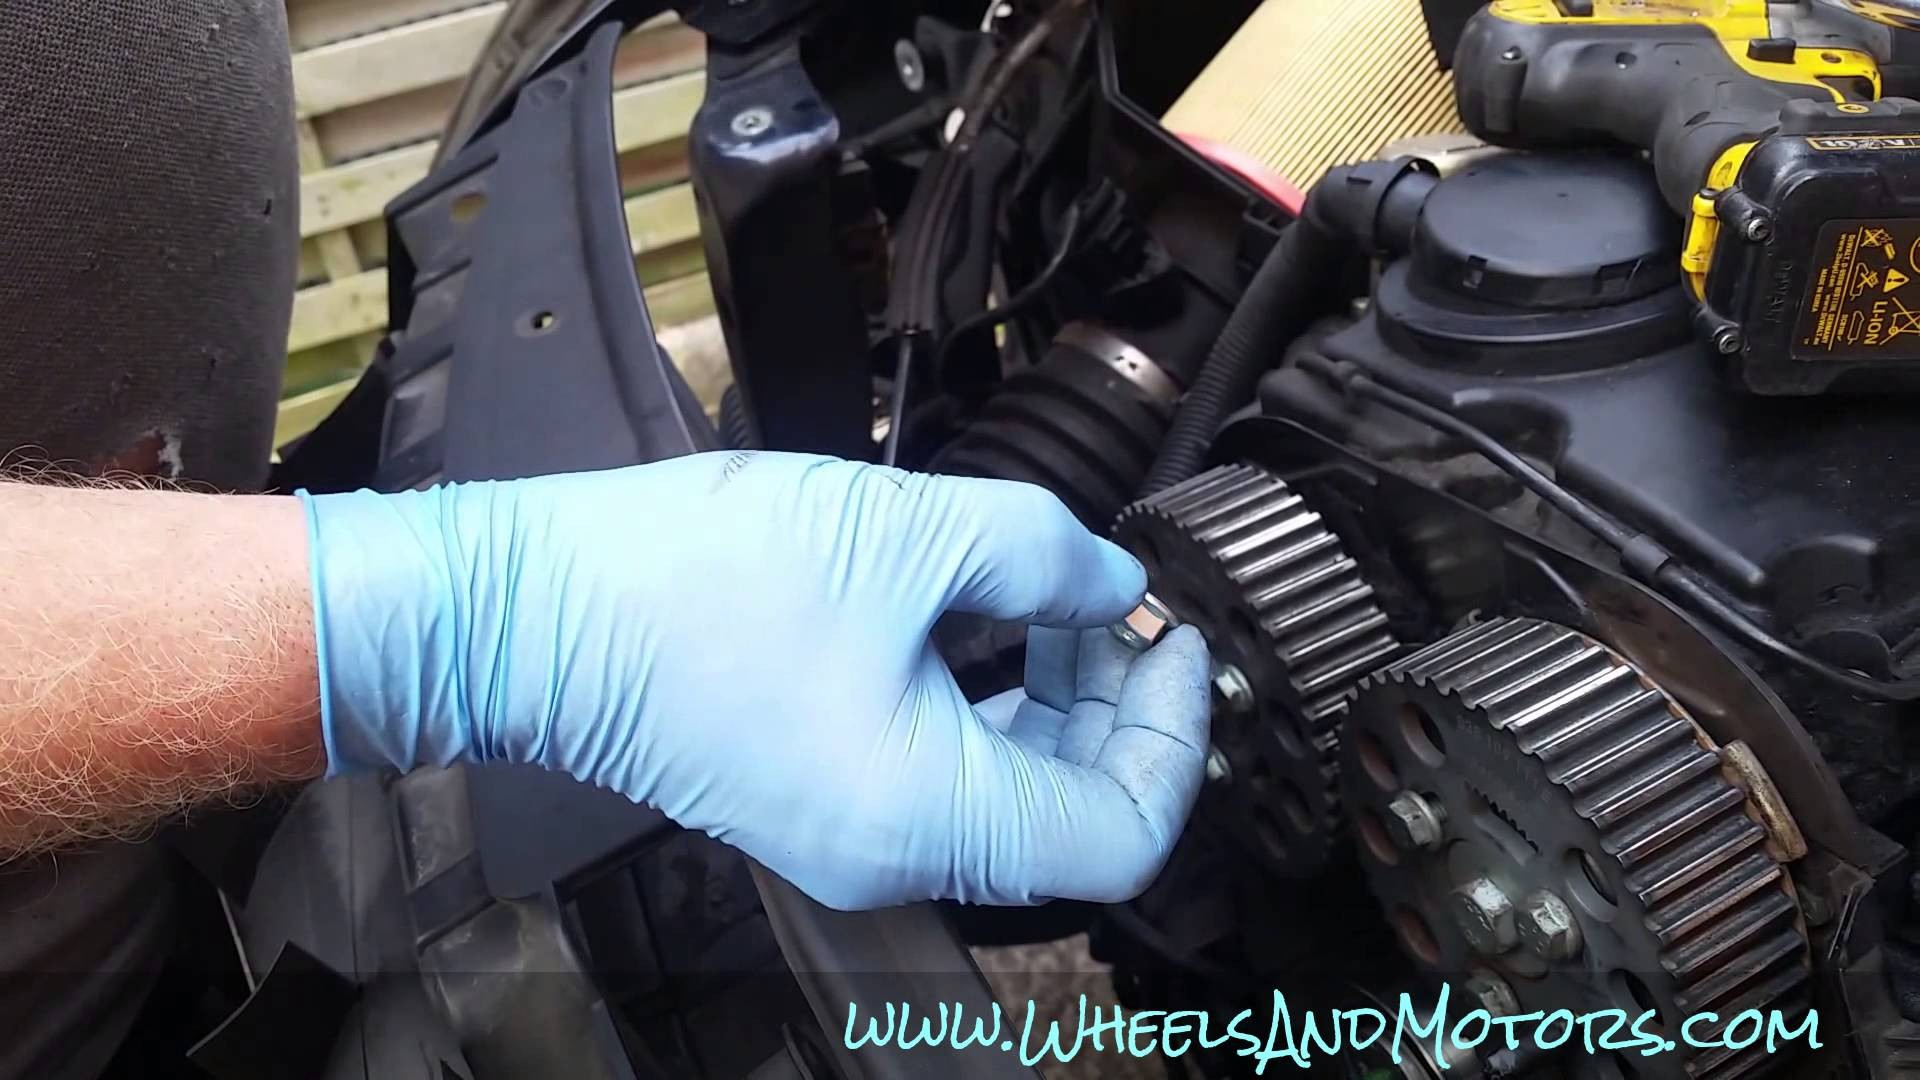 Vw Passat 2 0 Engine Diagram Product Wiring Diagrams 2001 How To Replace Timing Belt Cambelt And Rh Detoxicrecenze Com